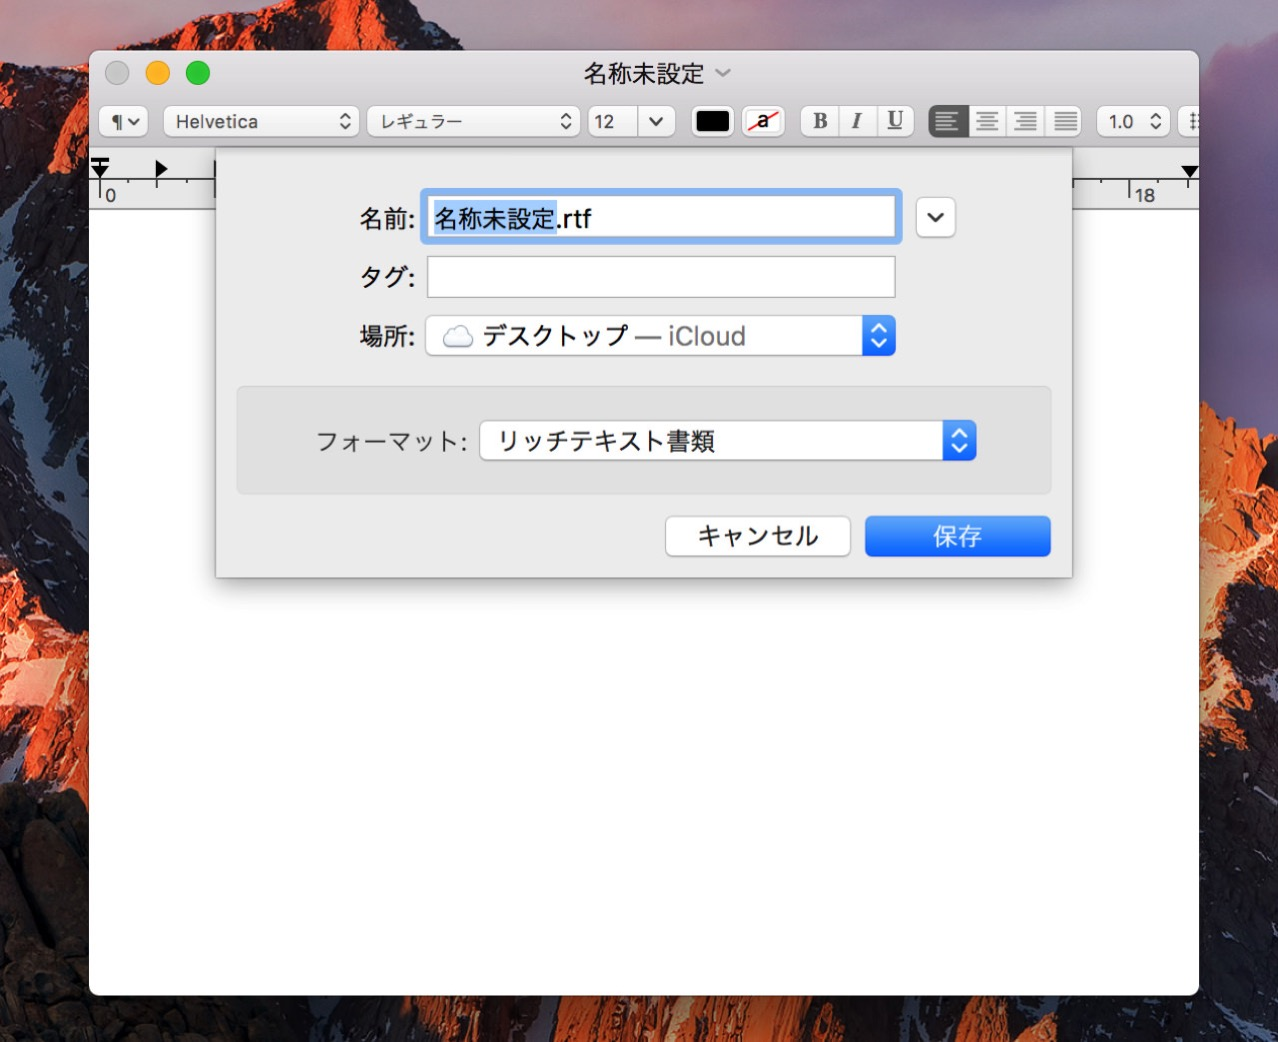 Quickly create new files with mac text editor1